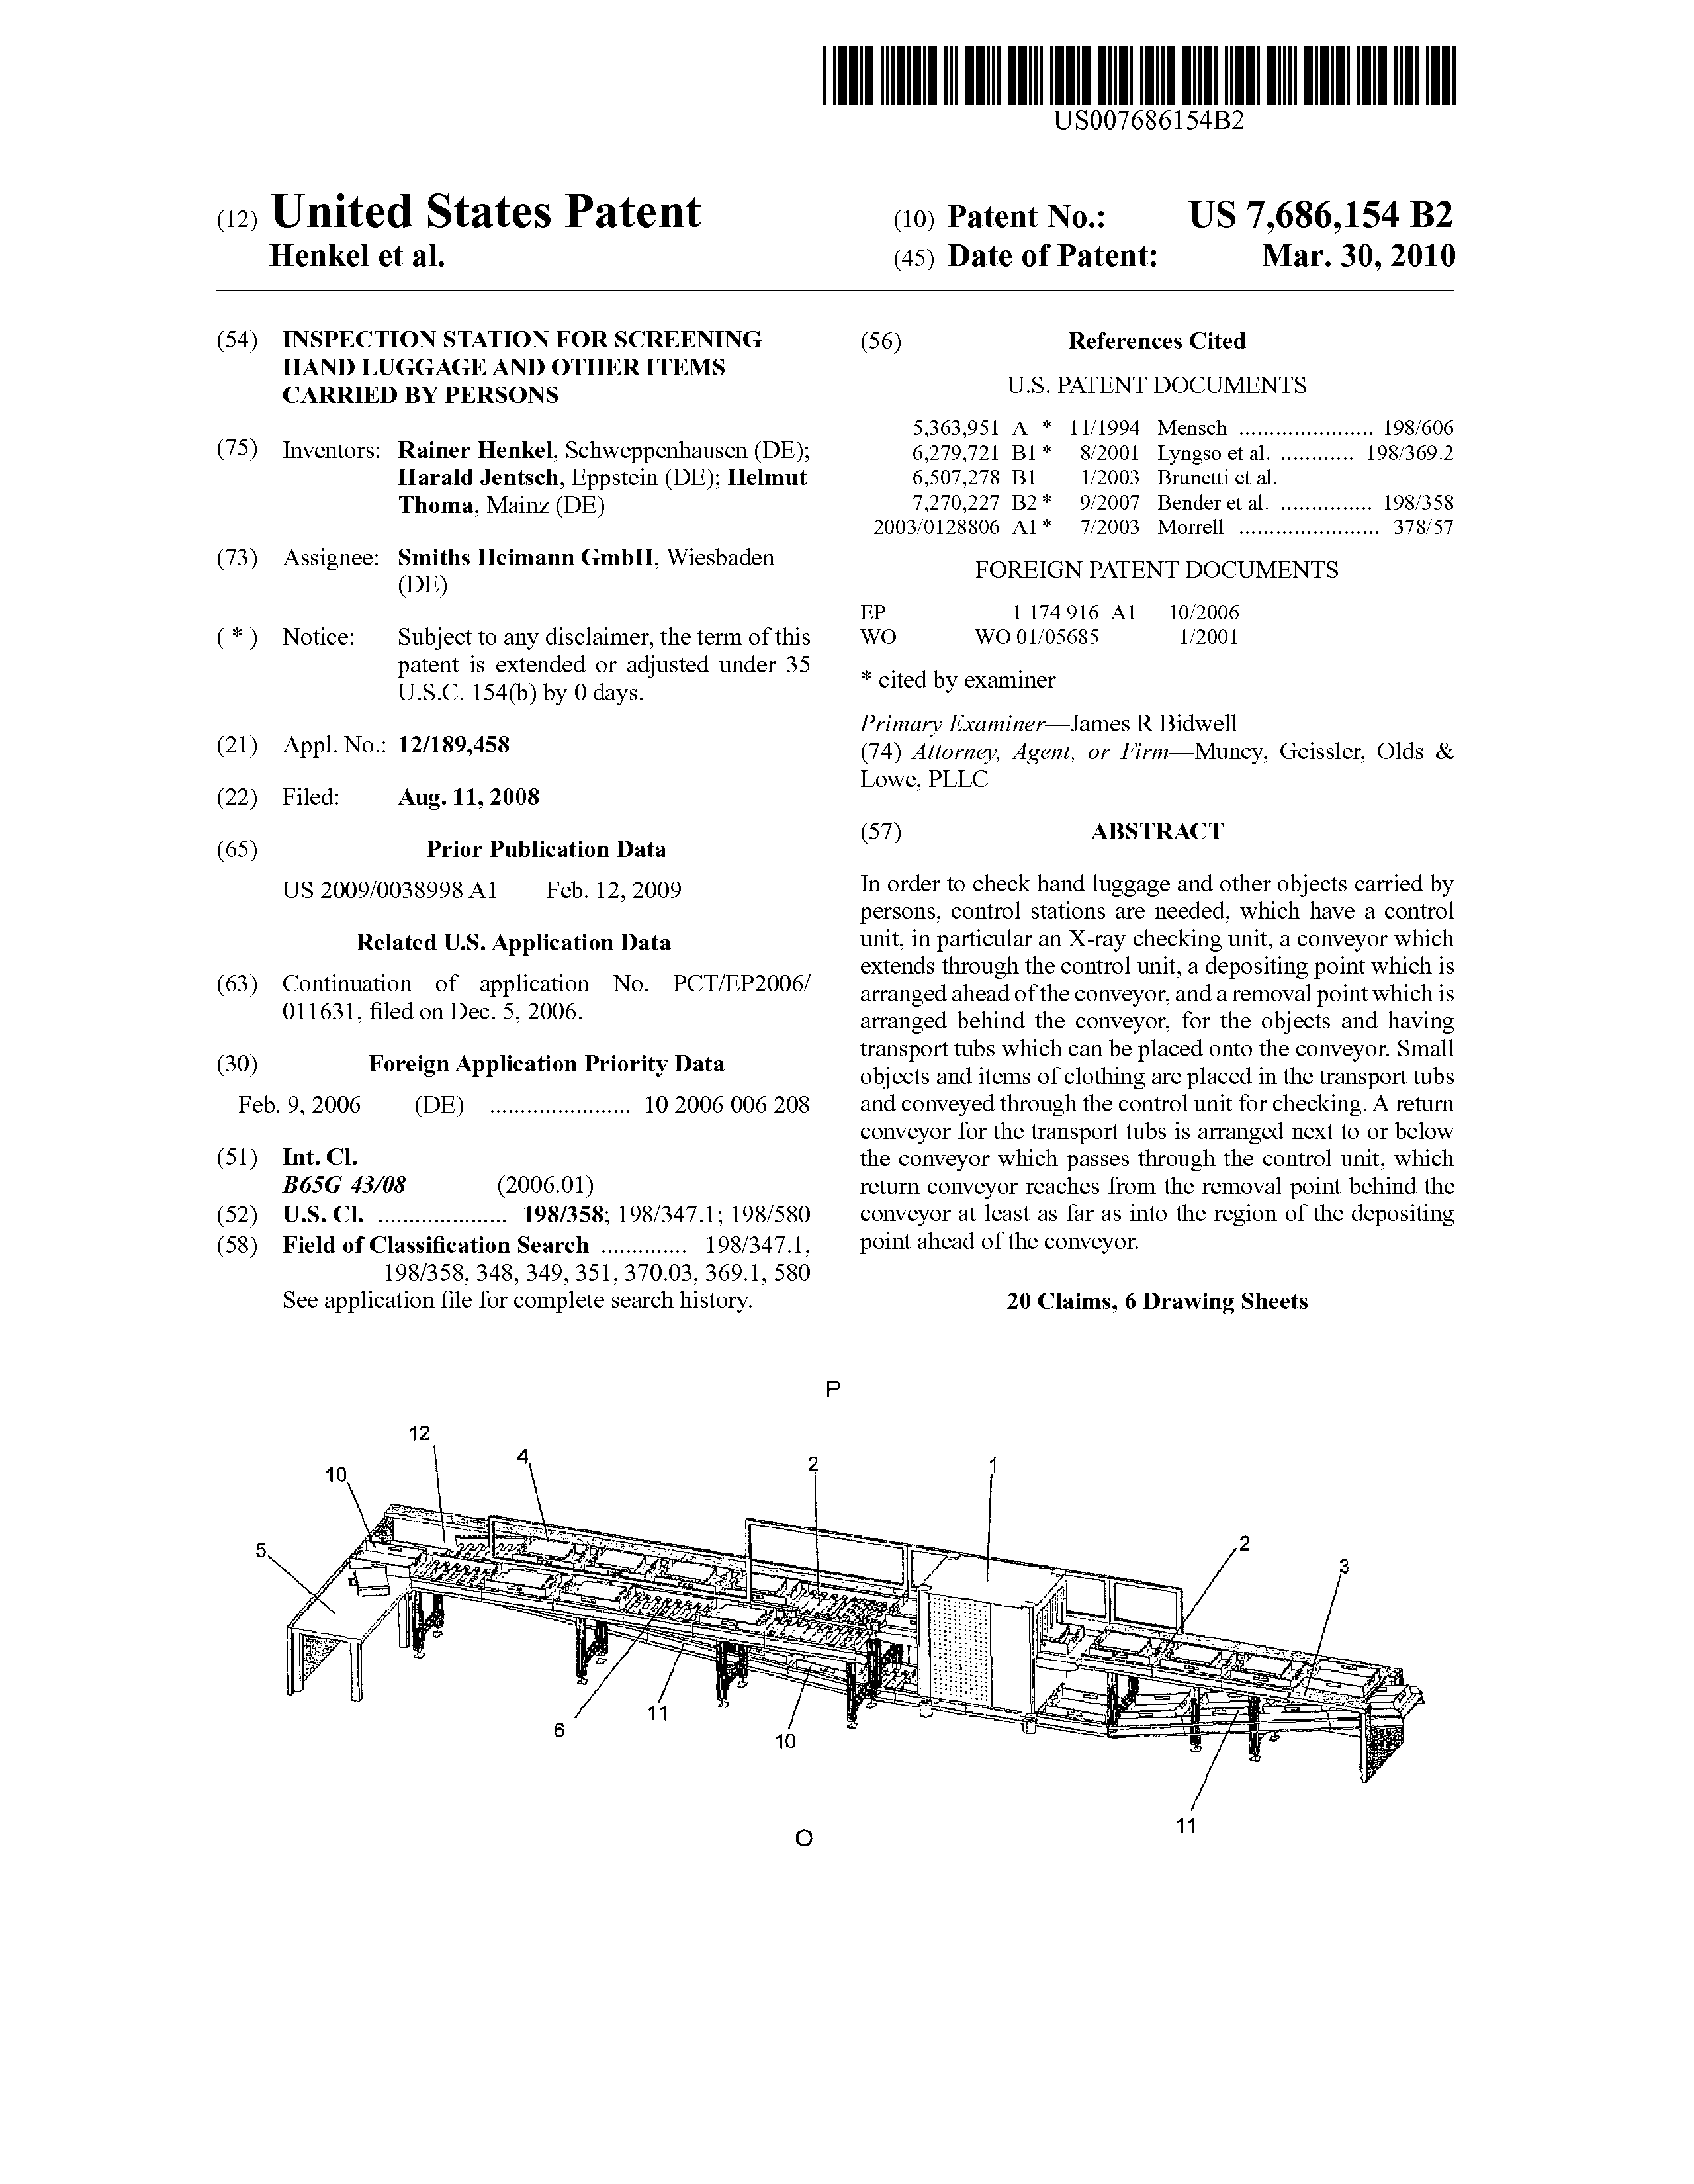 US 7686154 B2 - Inspection Station For Screening Hand